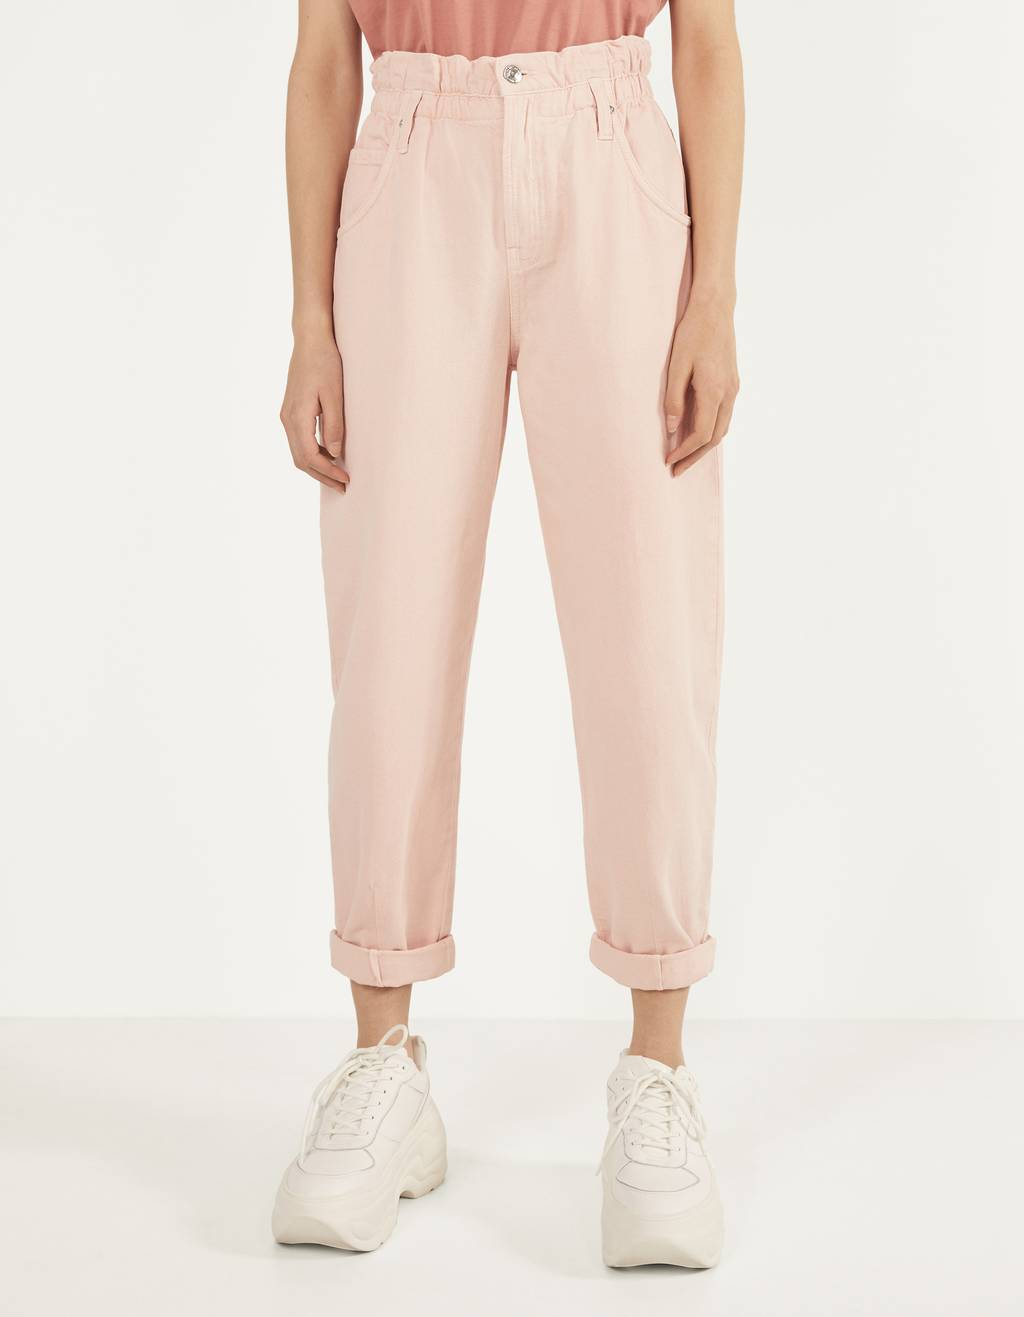 Slouchy pants with an elastic waistband